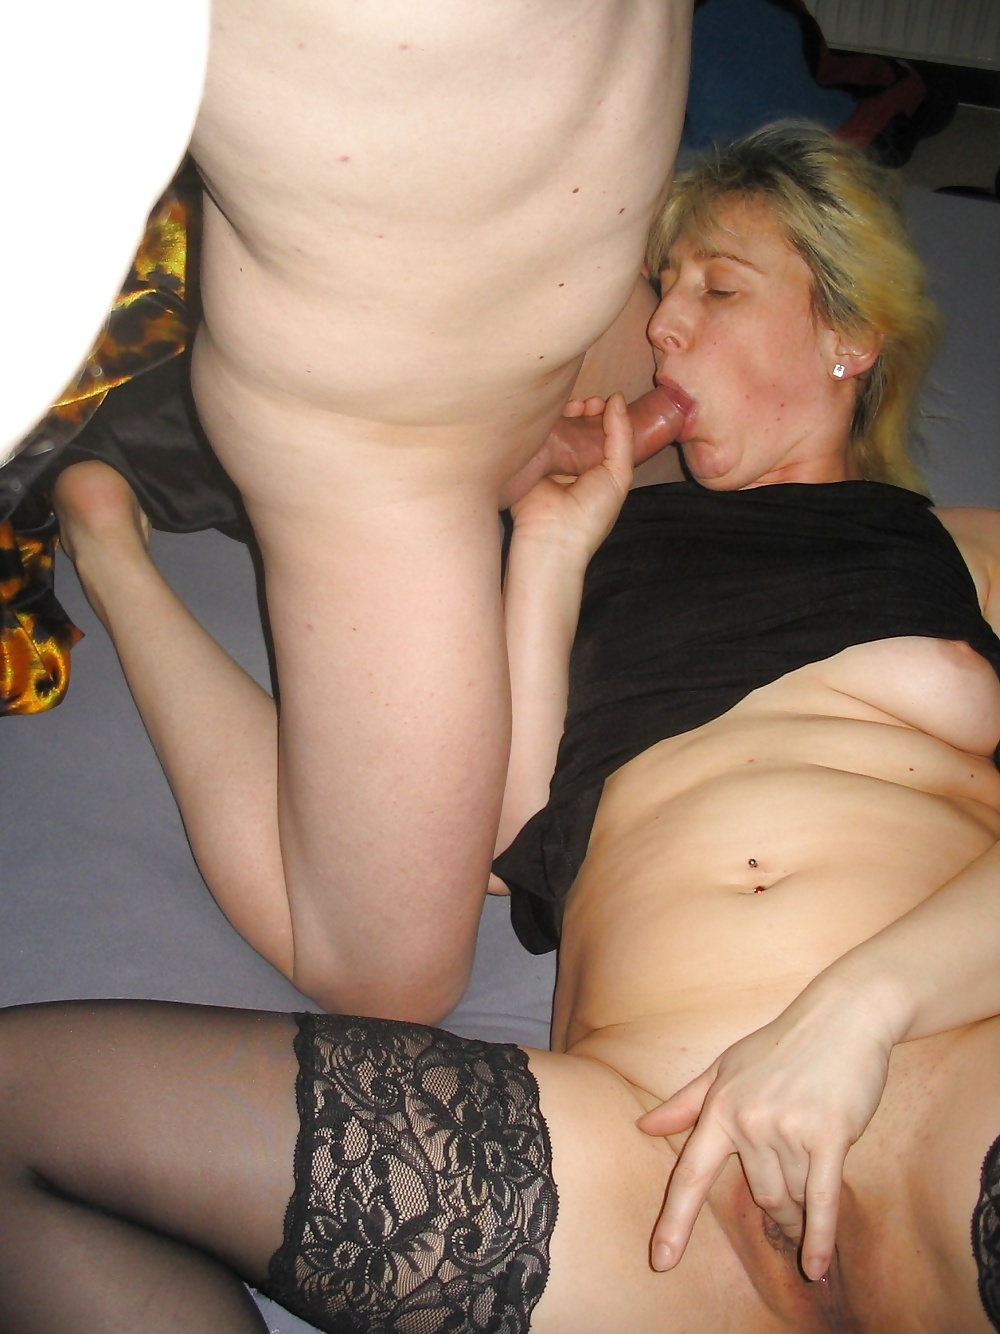 Sexy old spunker talks dirty and frigs her juicy pussy 4 u - 1 part 4